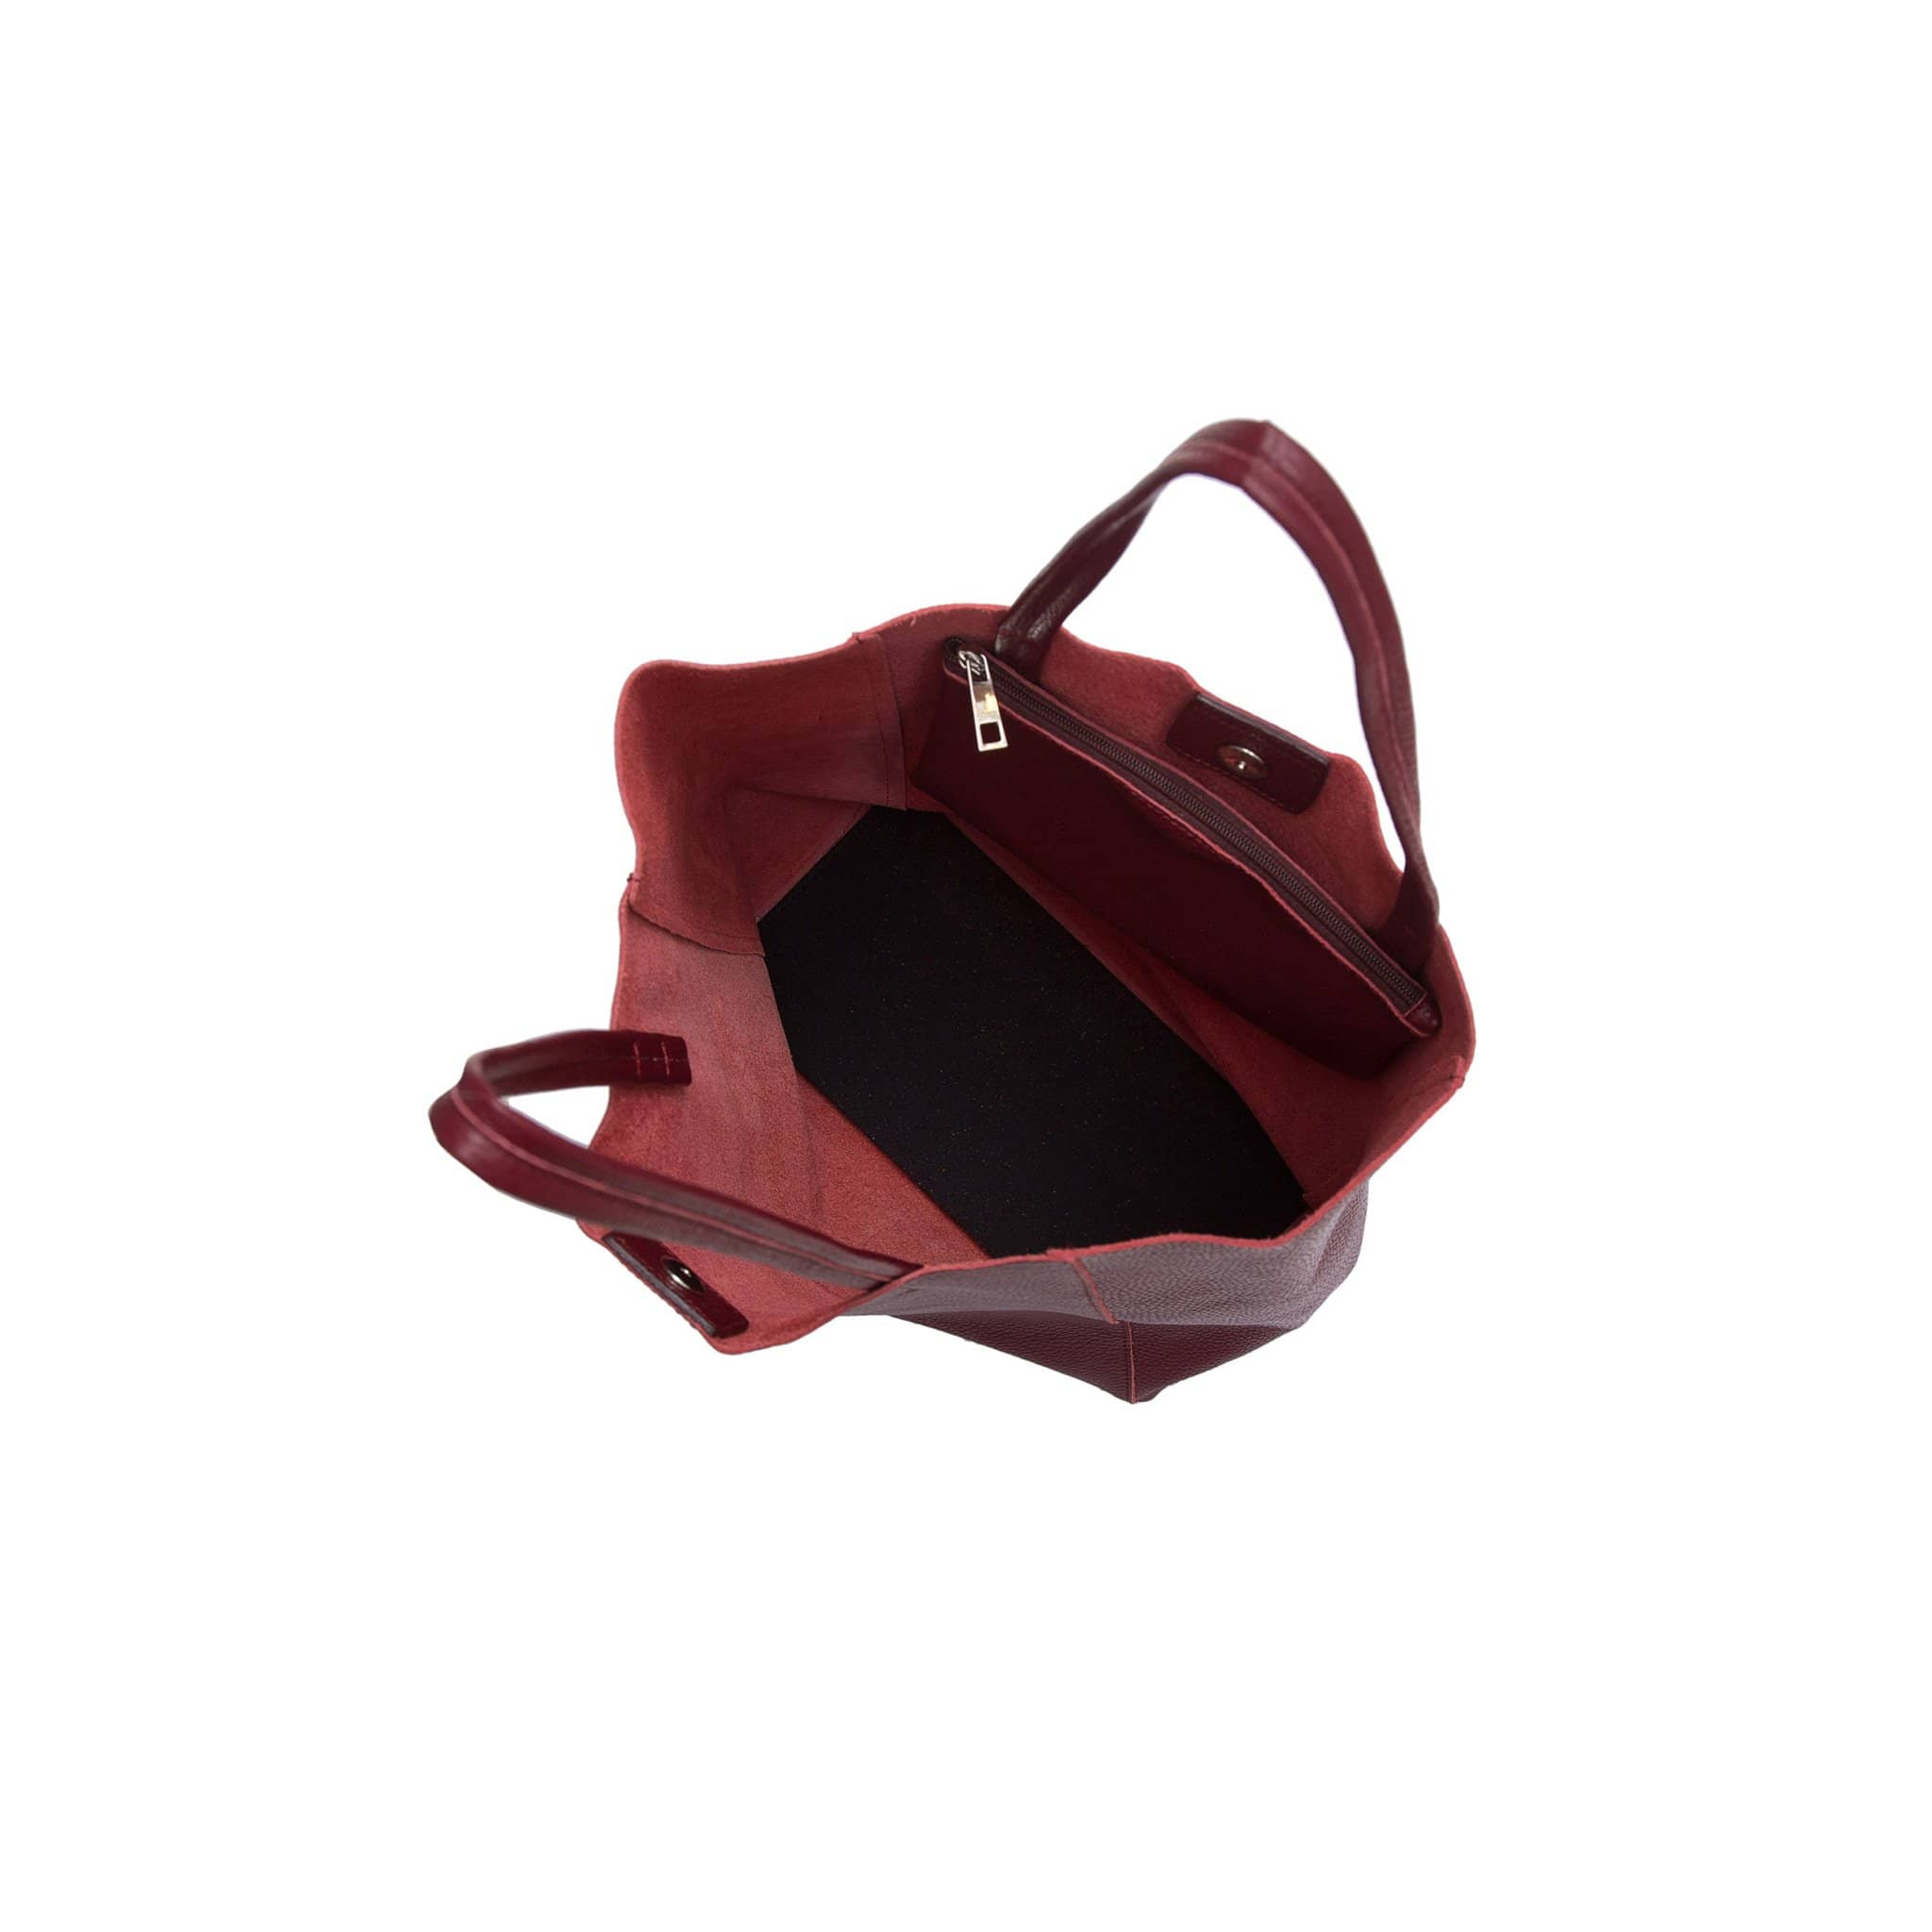 Lidia Palermo Soft Leather Tote - Bordeaux